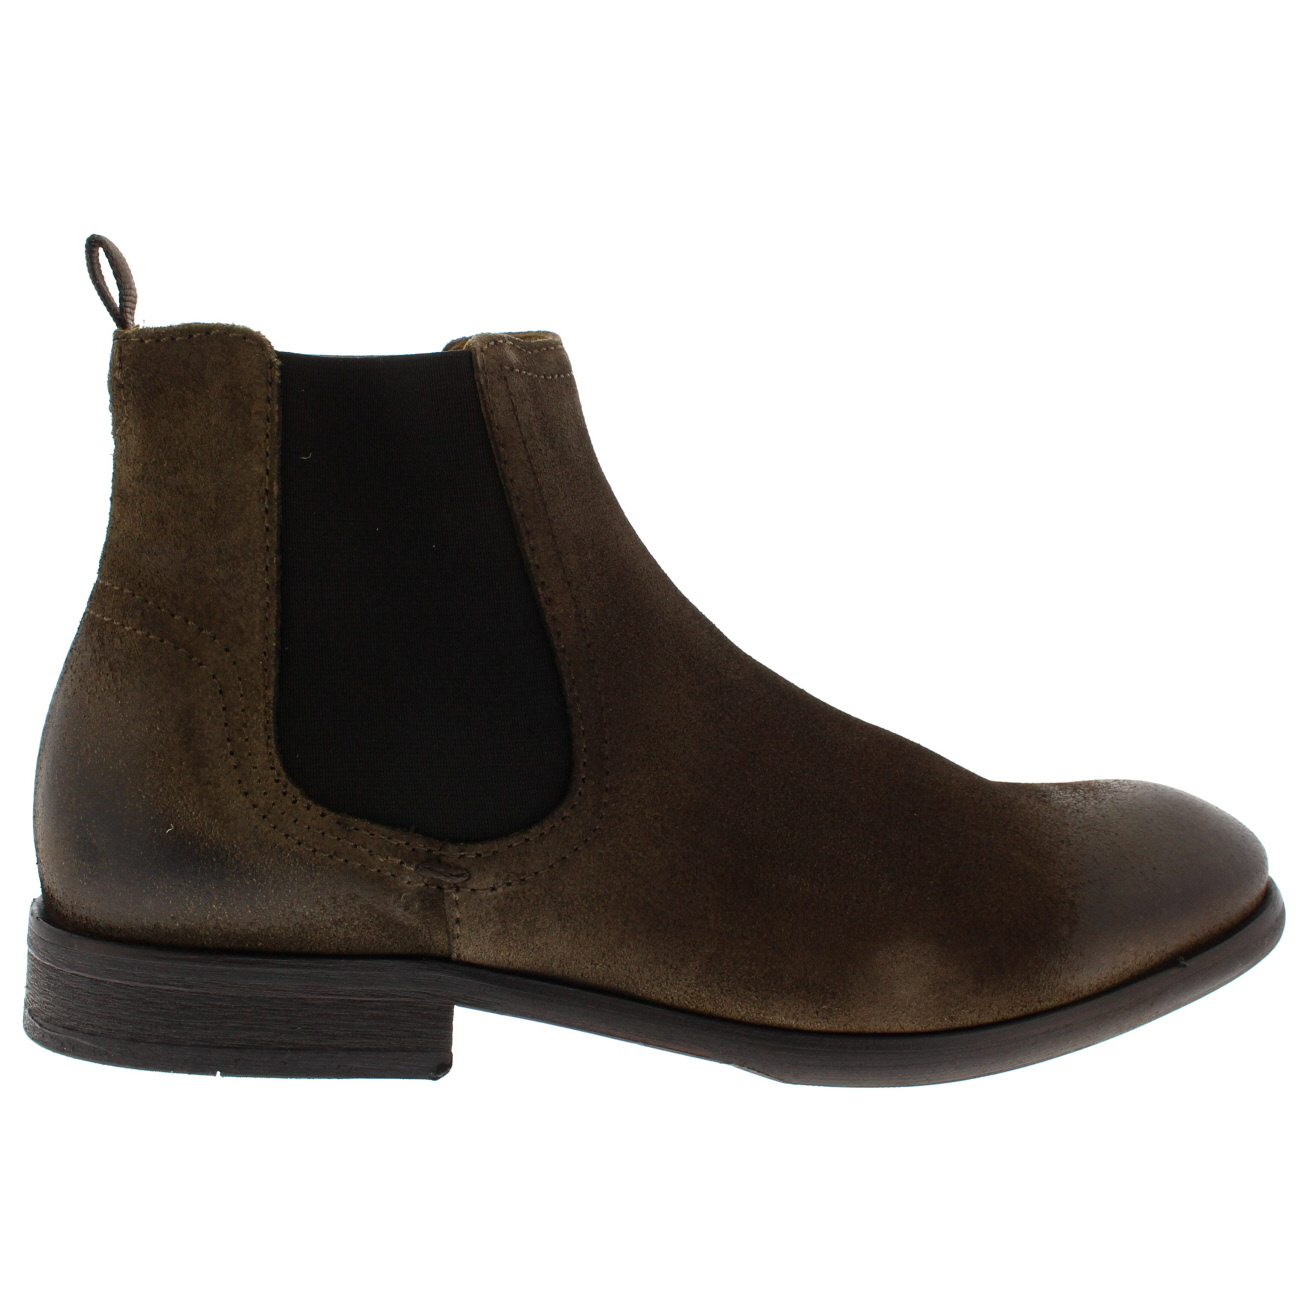 Mens Entwhistle Suede Ankle Boots, Brown Hudson